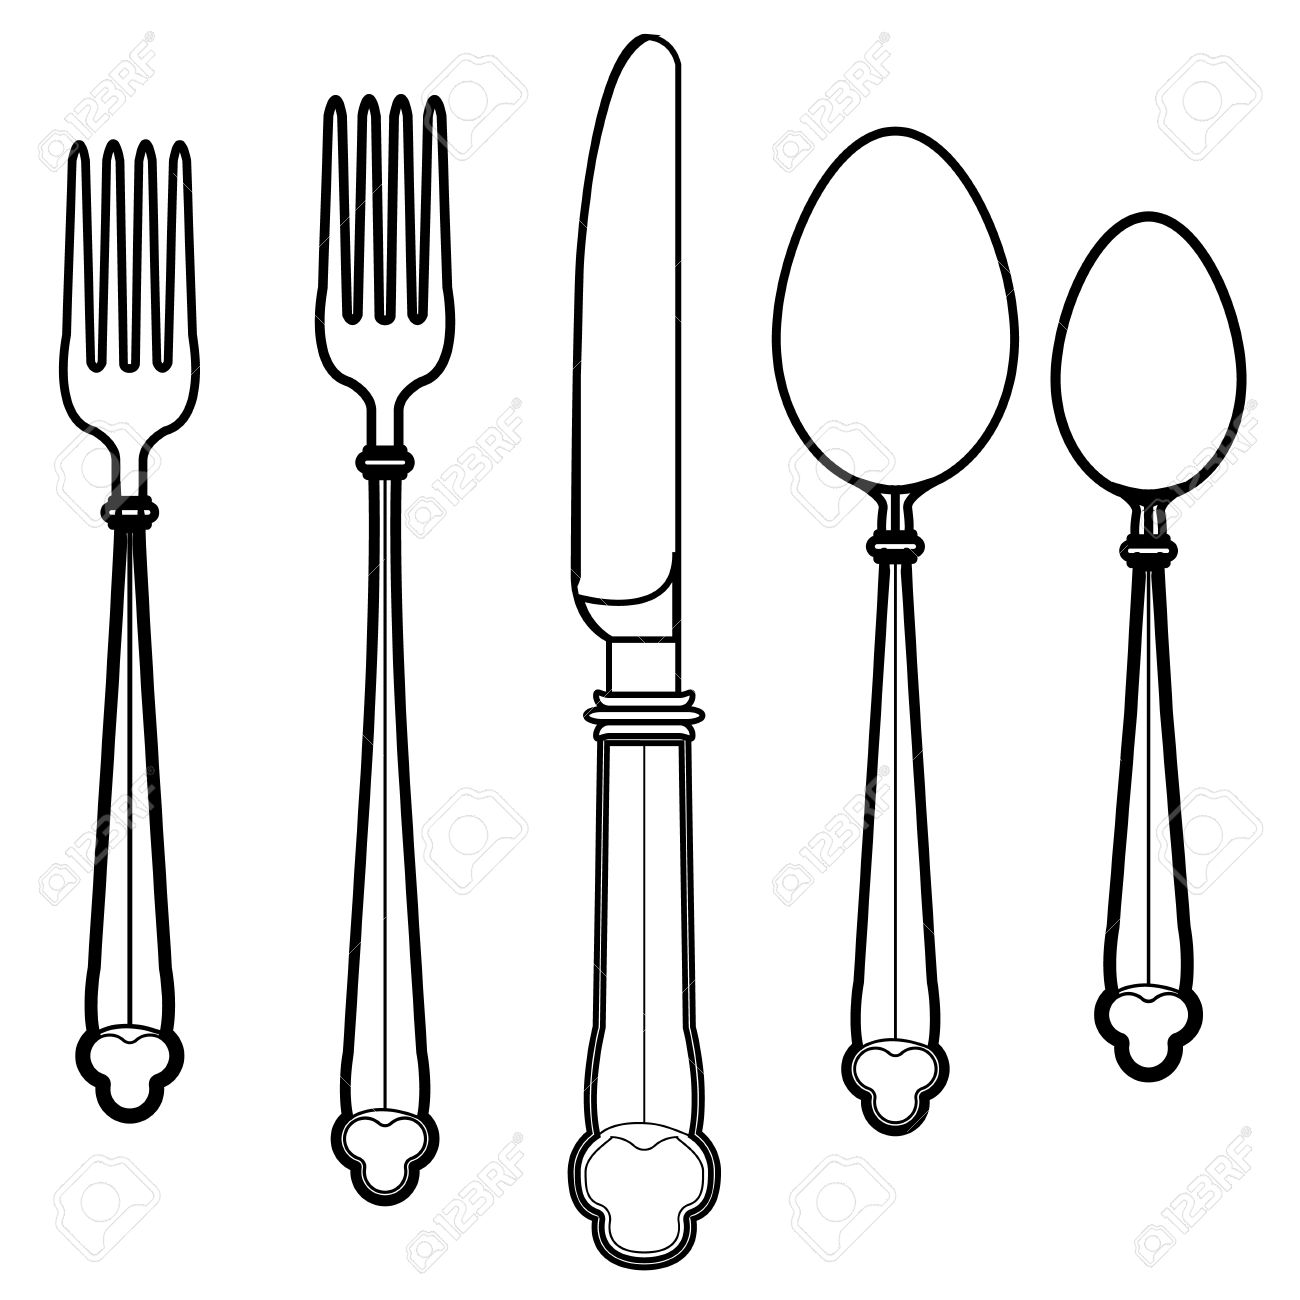 Eating Utensil Clipart